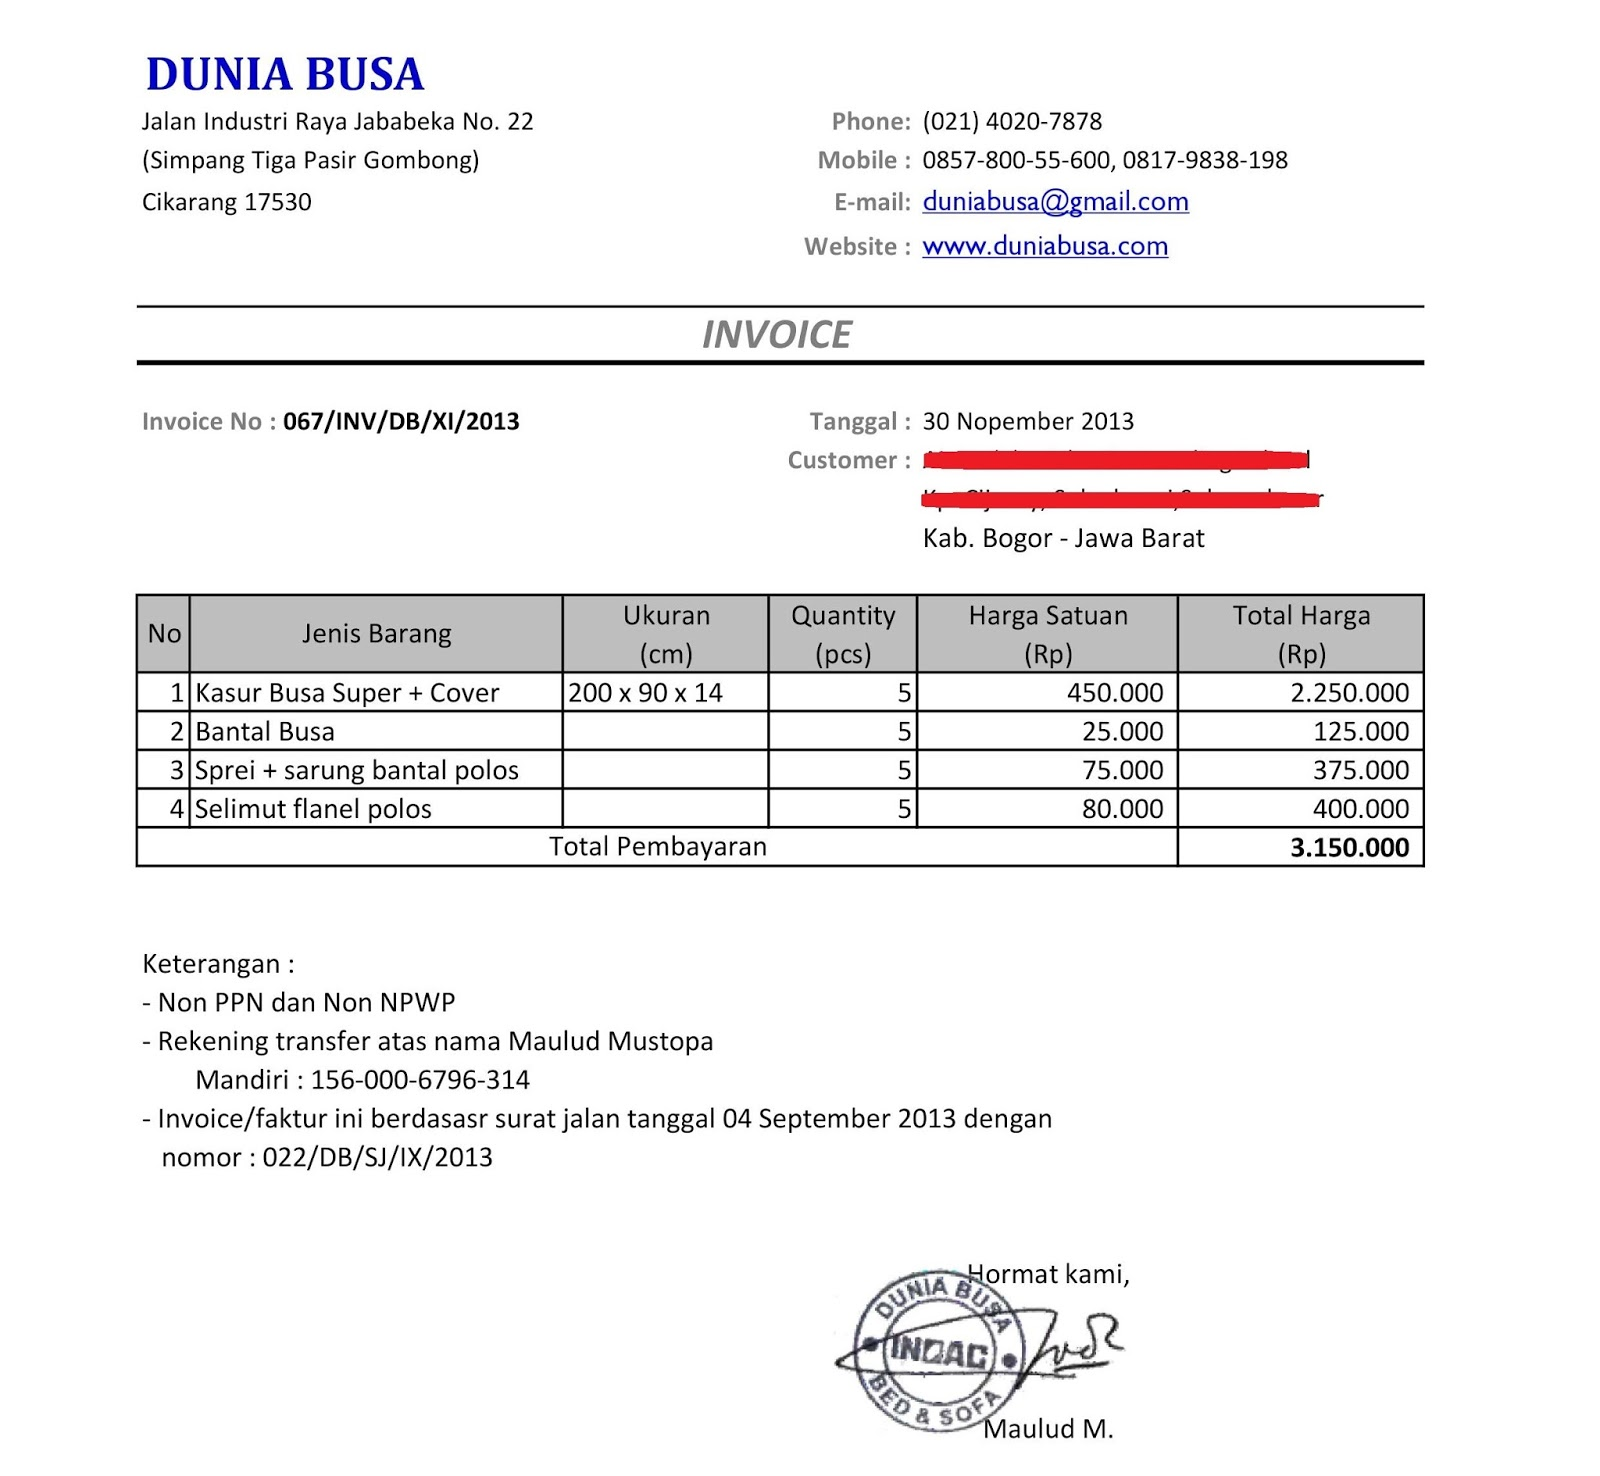 Centralasianshepherdus  Nice Free Invoice Online  Create Invoice Online  Invoice Template  With Magnificent Contoh Format Invoice Atau Surat Tagihan  Brankas Arsip  Free Invoice Online With Delectable Vat Only Invoice Also Software Invoice Free In Addition On Invoice Discount And Sage Invoice Templates As Well As Tax Invoice Template Word Doc Additionally Automatic Invoice Processing From Sklepco With Centralasianshepherdus  Magnificent Free Invoice Online  Create Invoice Online  Invoice Template  With Delectable Contoh Format Invoice Atau Surat Tagihan  Brankas Arsip  Free Invoice Online And Nice Vat Only Invoice Also Software Invoice Free In Addition On Invoice Discount From Sklepco